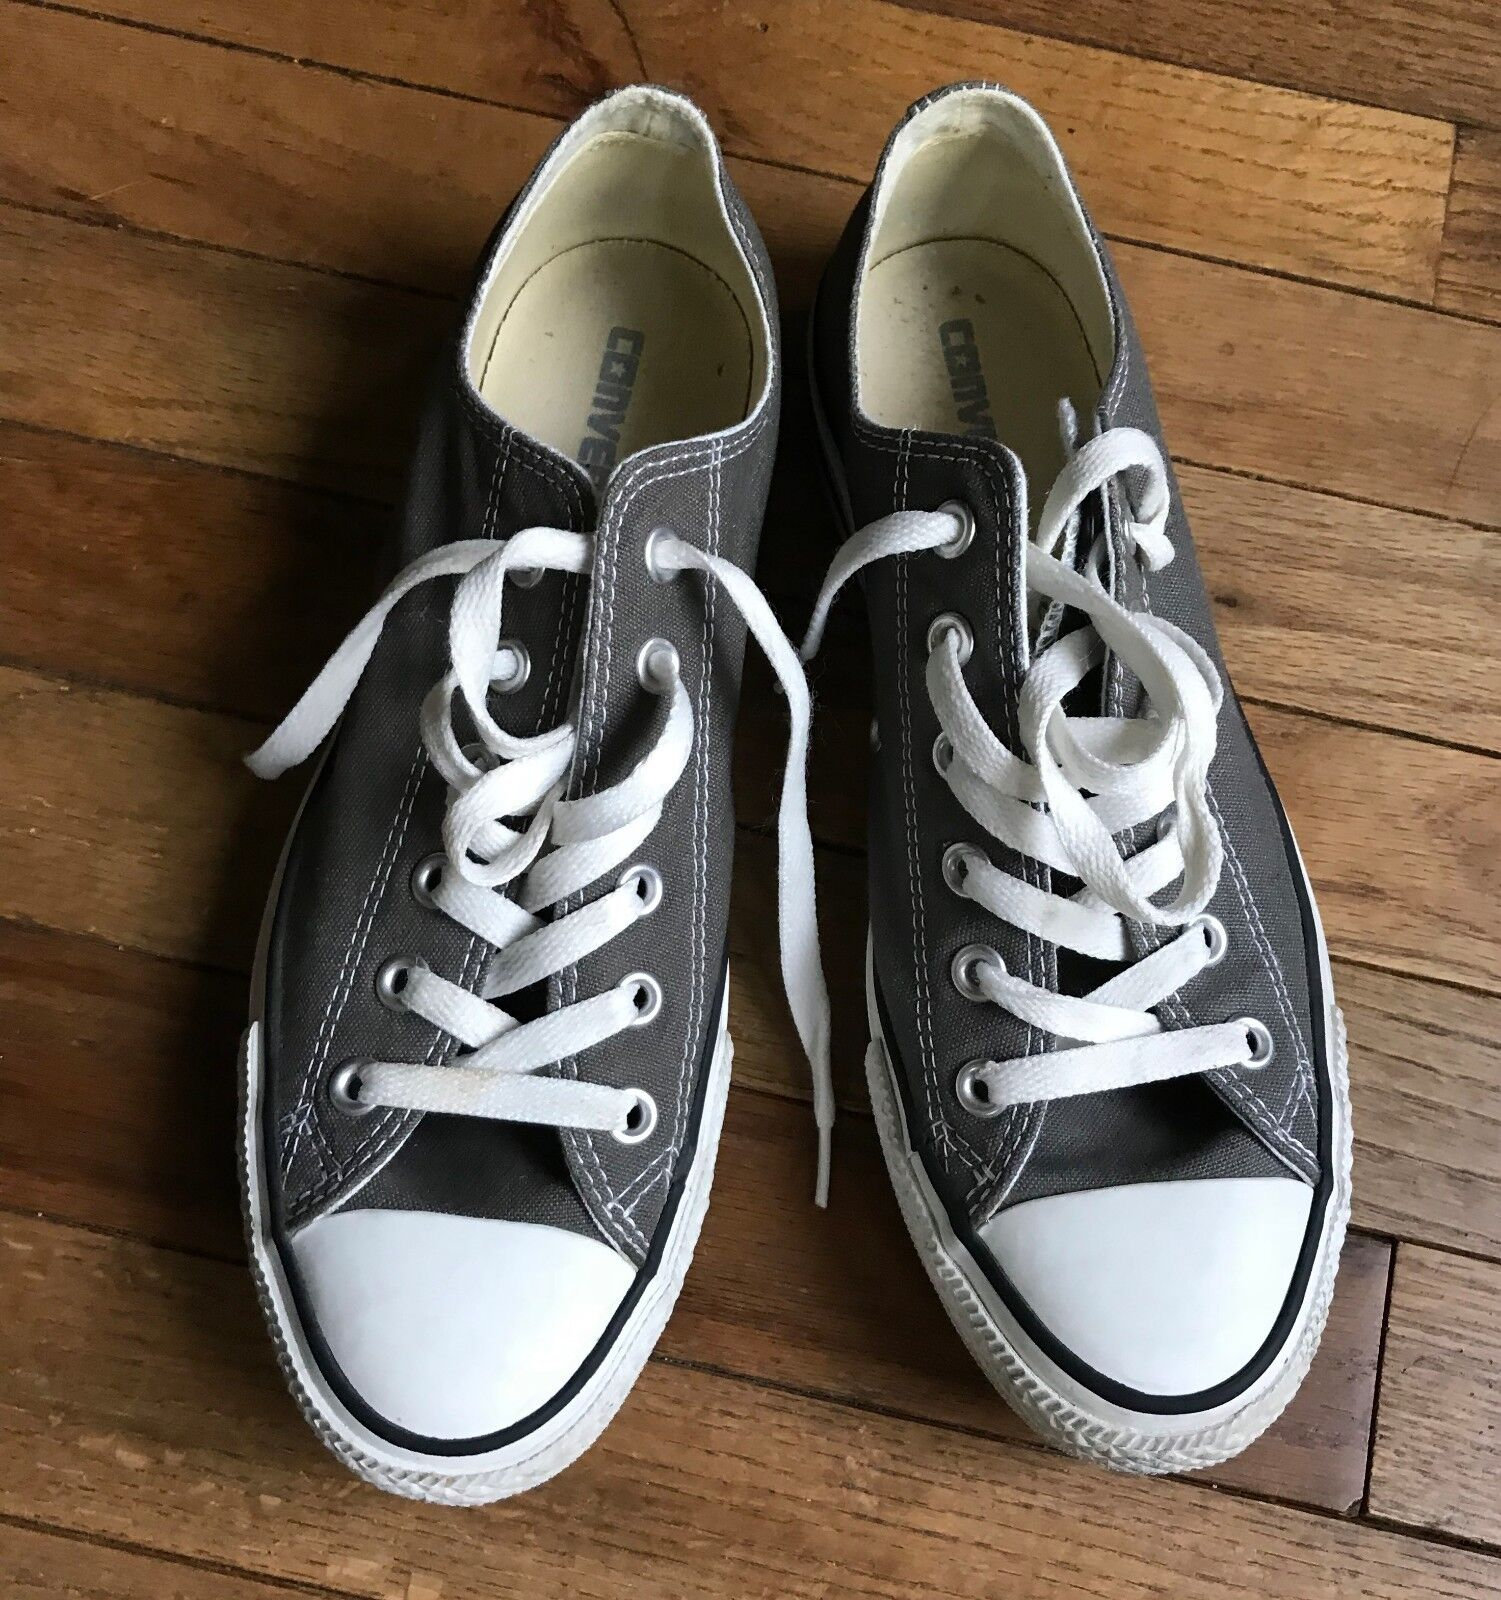 Converse All Star Chuck Taylor Canvas Shoes Low Top Size 8 Men's 10 Women's